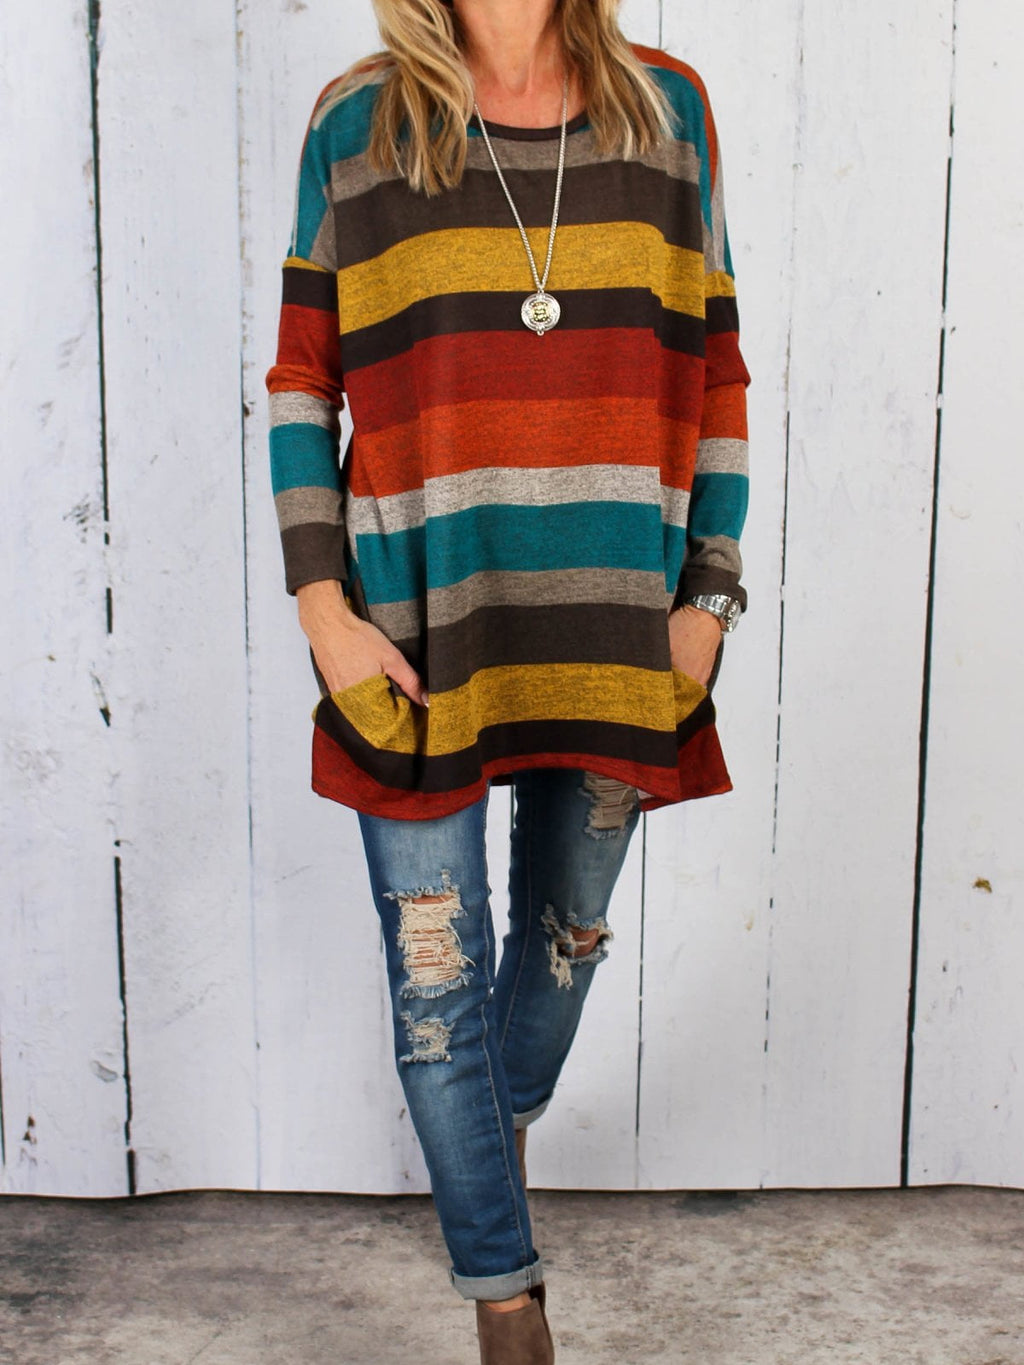 Round Neck Long Sleeve Colorful Striped Tee Shirt